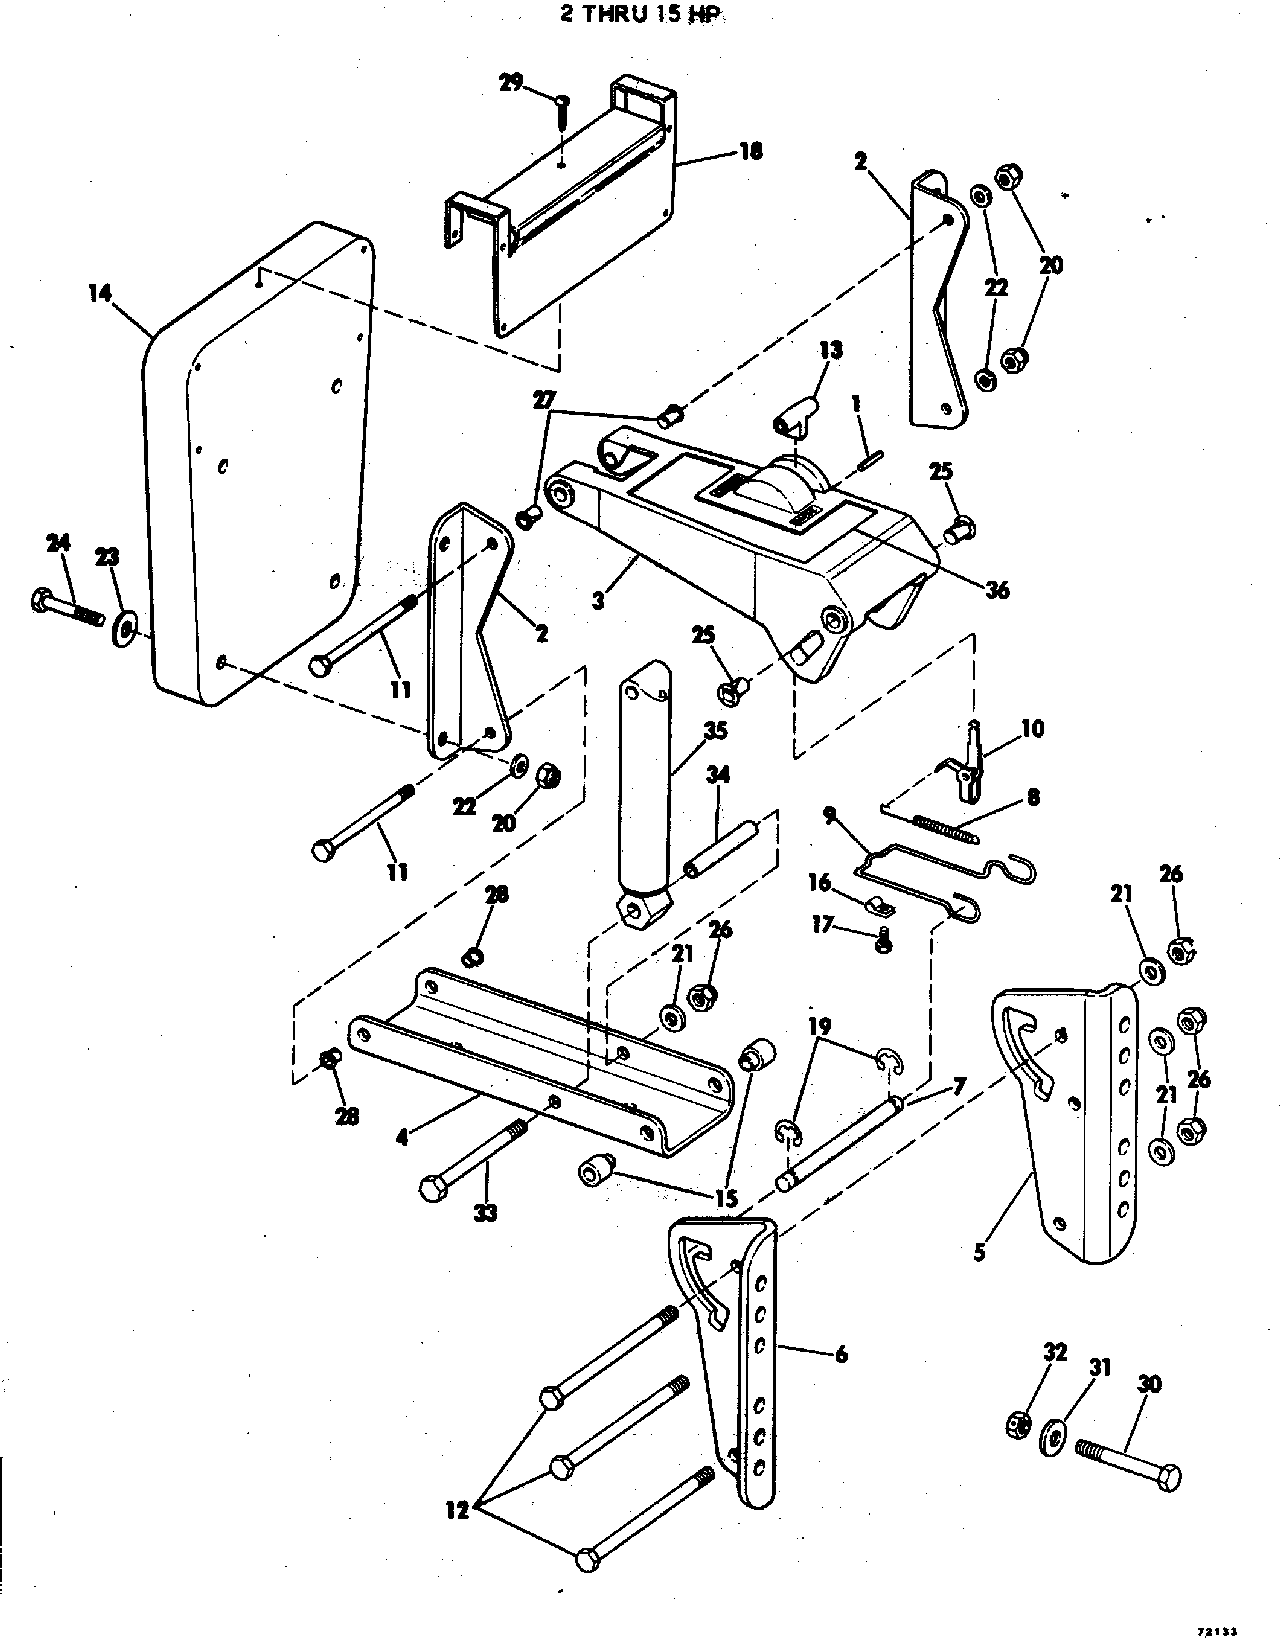 1977section auxiliary motor bracket kit 2 thru 15 hpyid 34200mid 34204sid 36167 nissan engine motor mount diagram nissan engine motor mount diagram